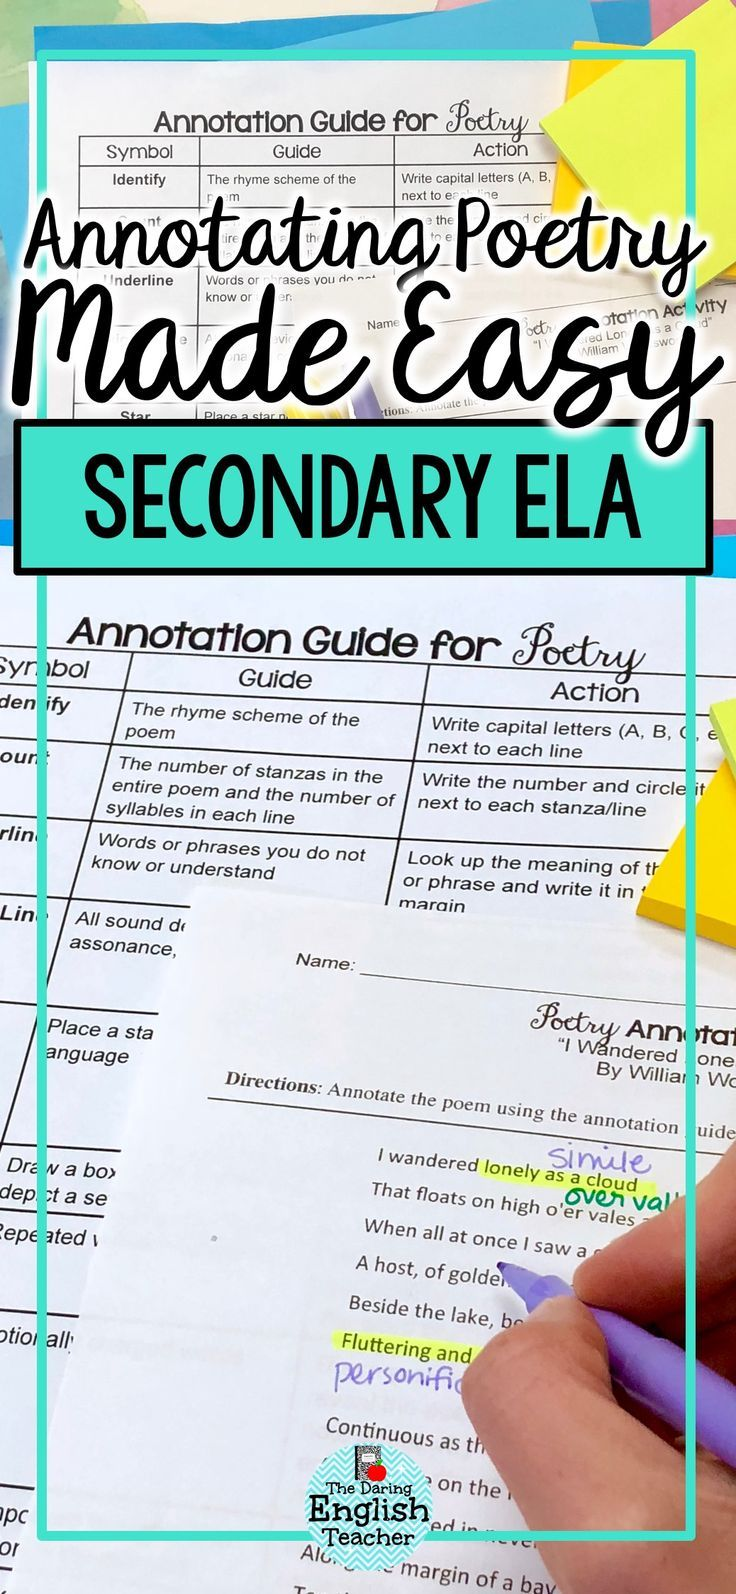 annotating poetry made easy poetry resources lessons and ideas collaborative board poetry. Black Bedroom Furniture Sets. Home Design Ideas